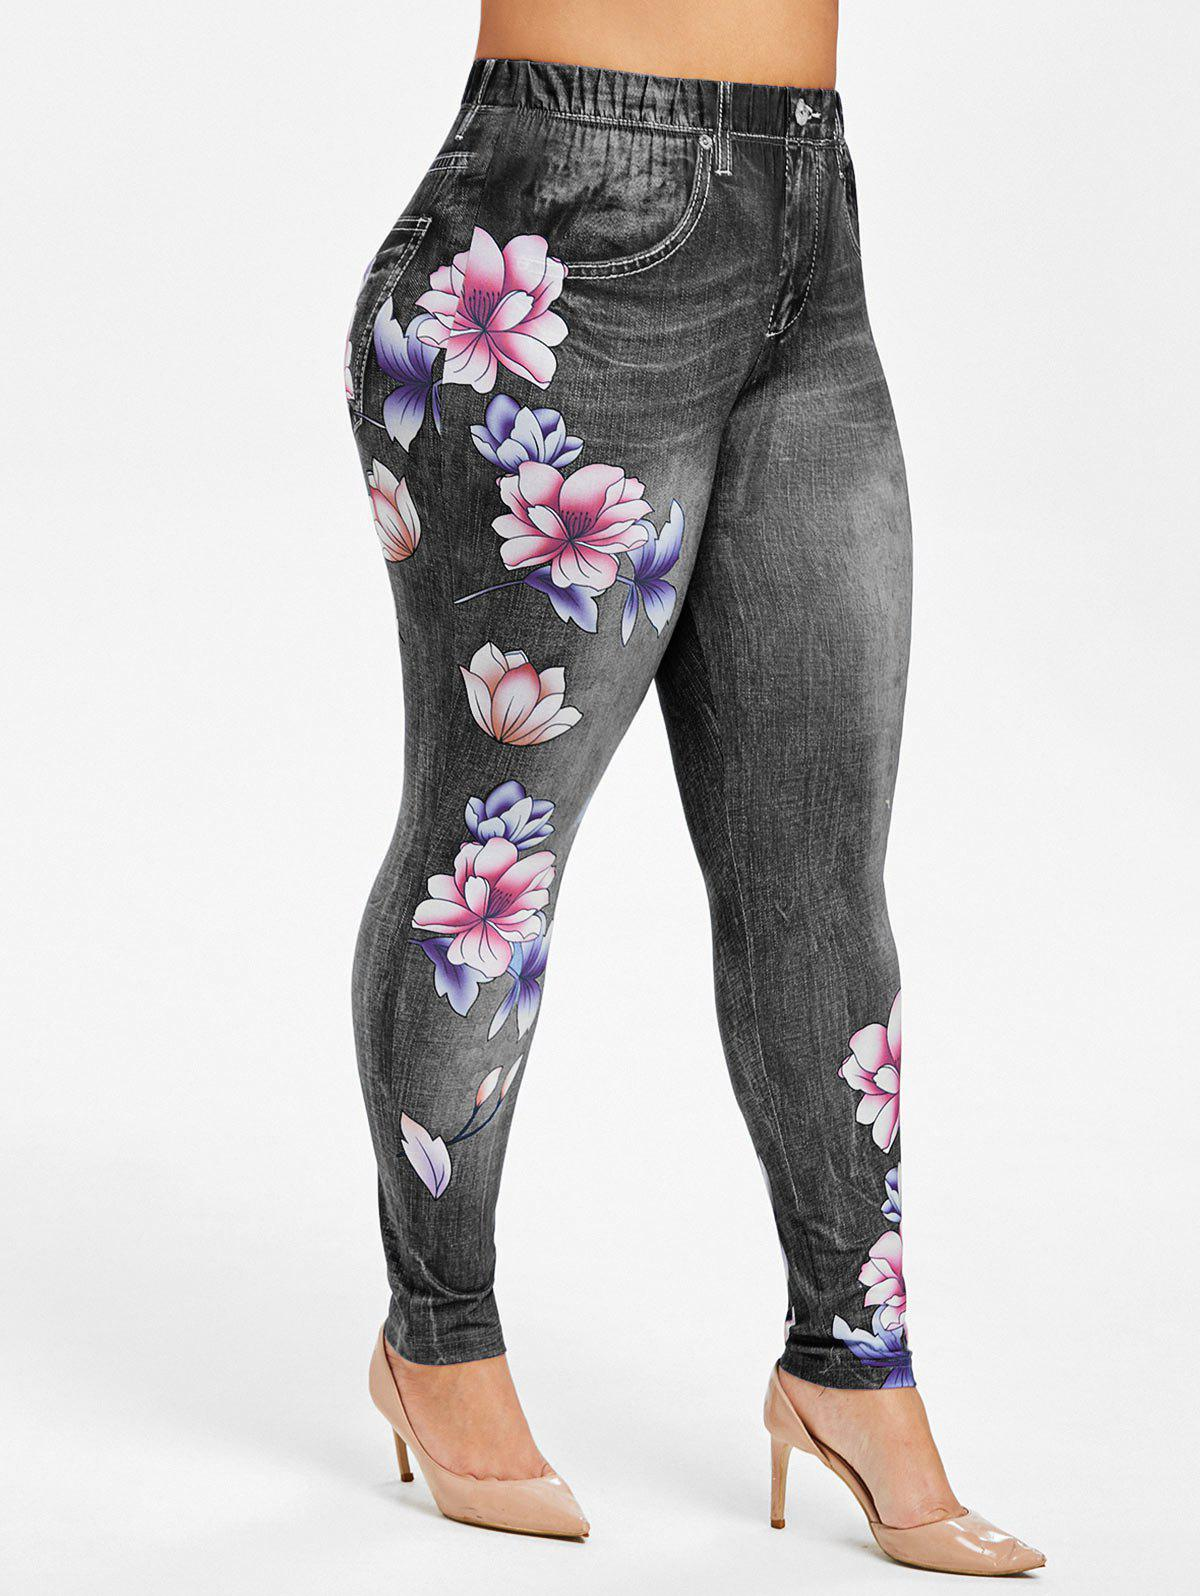 Chic Plus Size High Rise Floral Jean 3D Print Jeggings